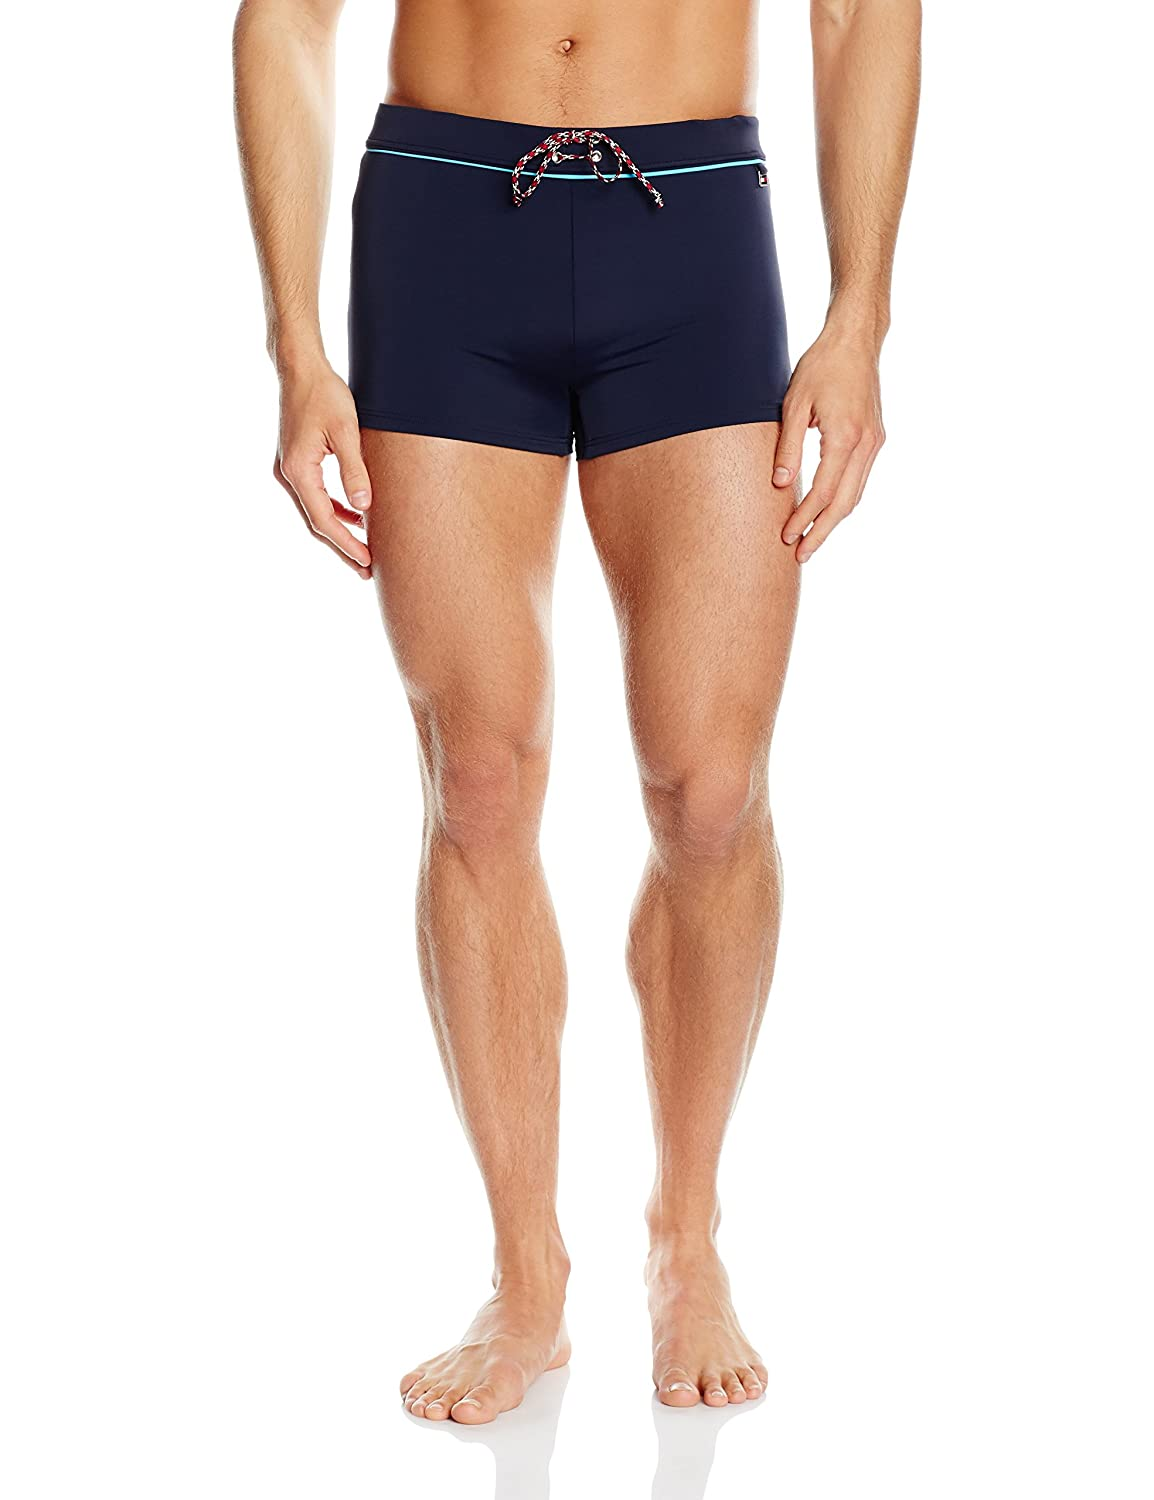 Tommy Hilfiger Men's Fashion Swim Trunk Swimsuit